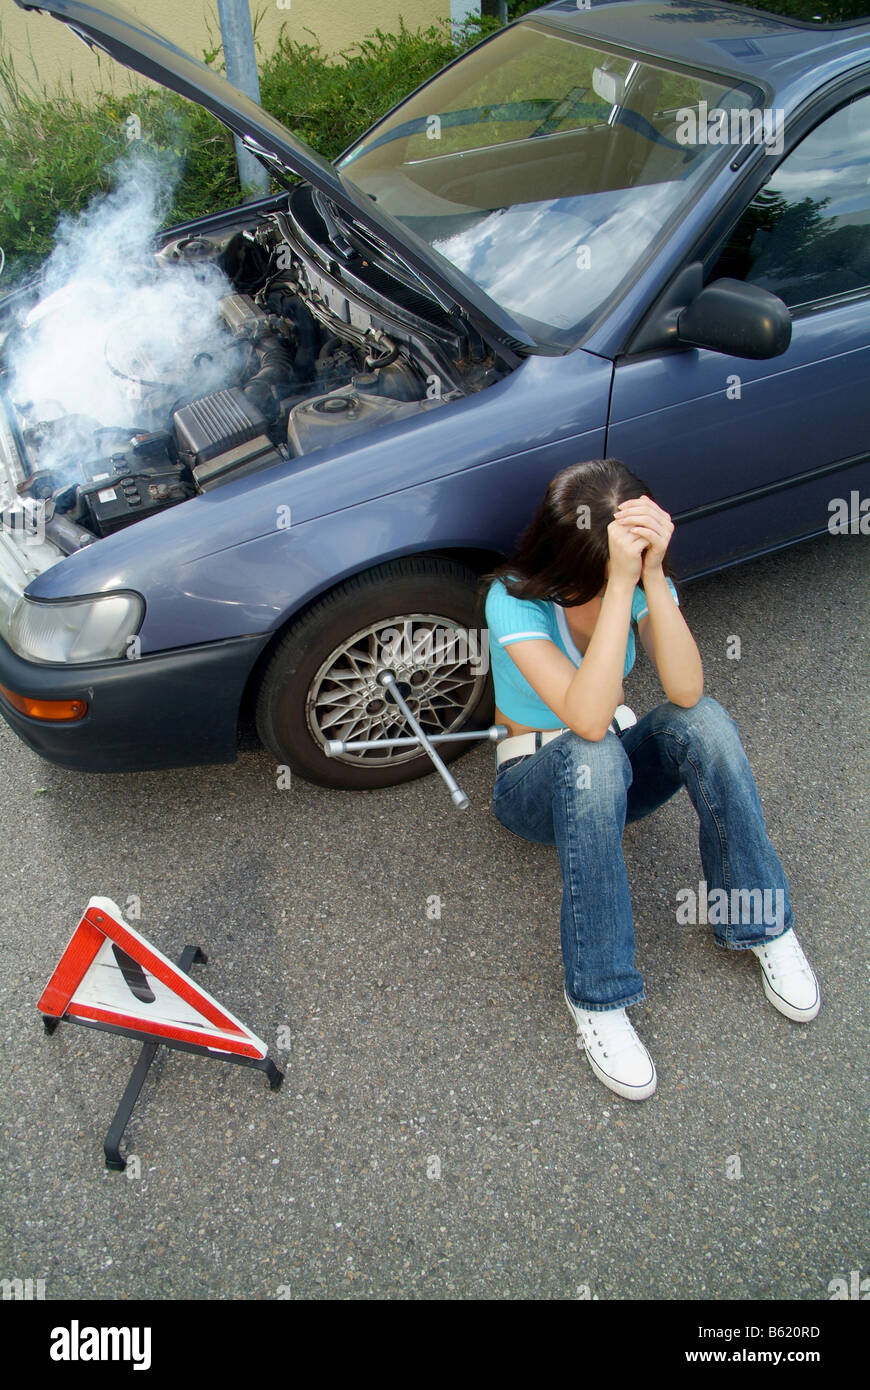 Broken Down Abandoned Stock Photos Broken Down Abandoned: Broken Down Car Smoke Stock Photos & Broken Down Car Smoke